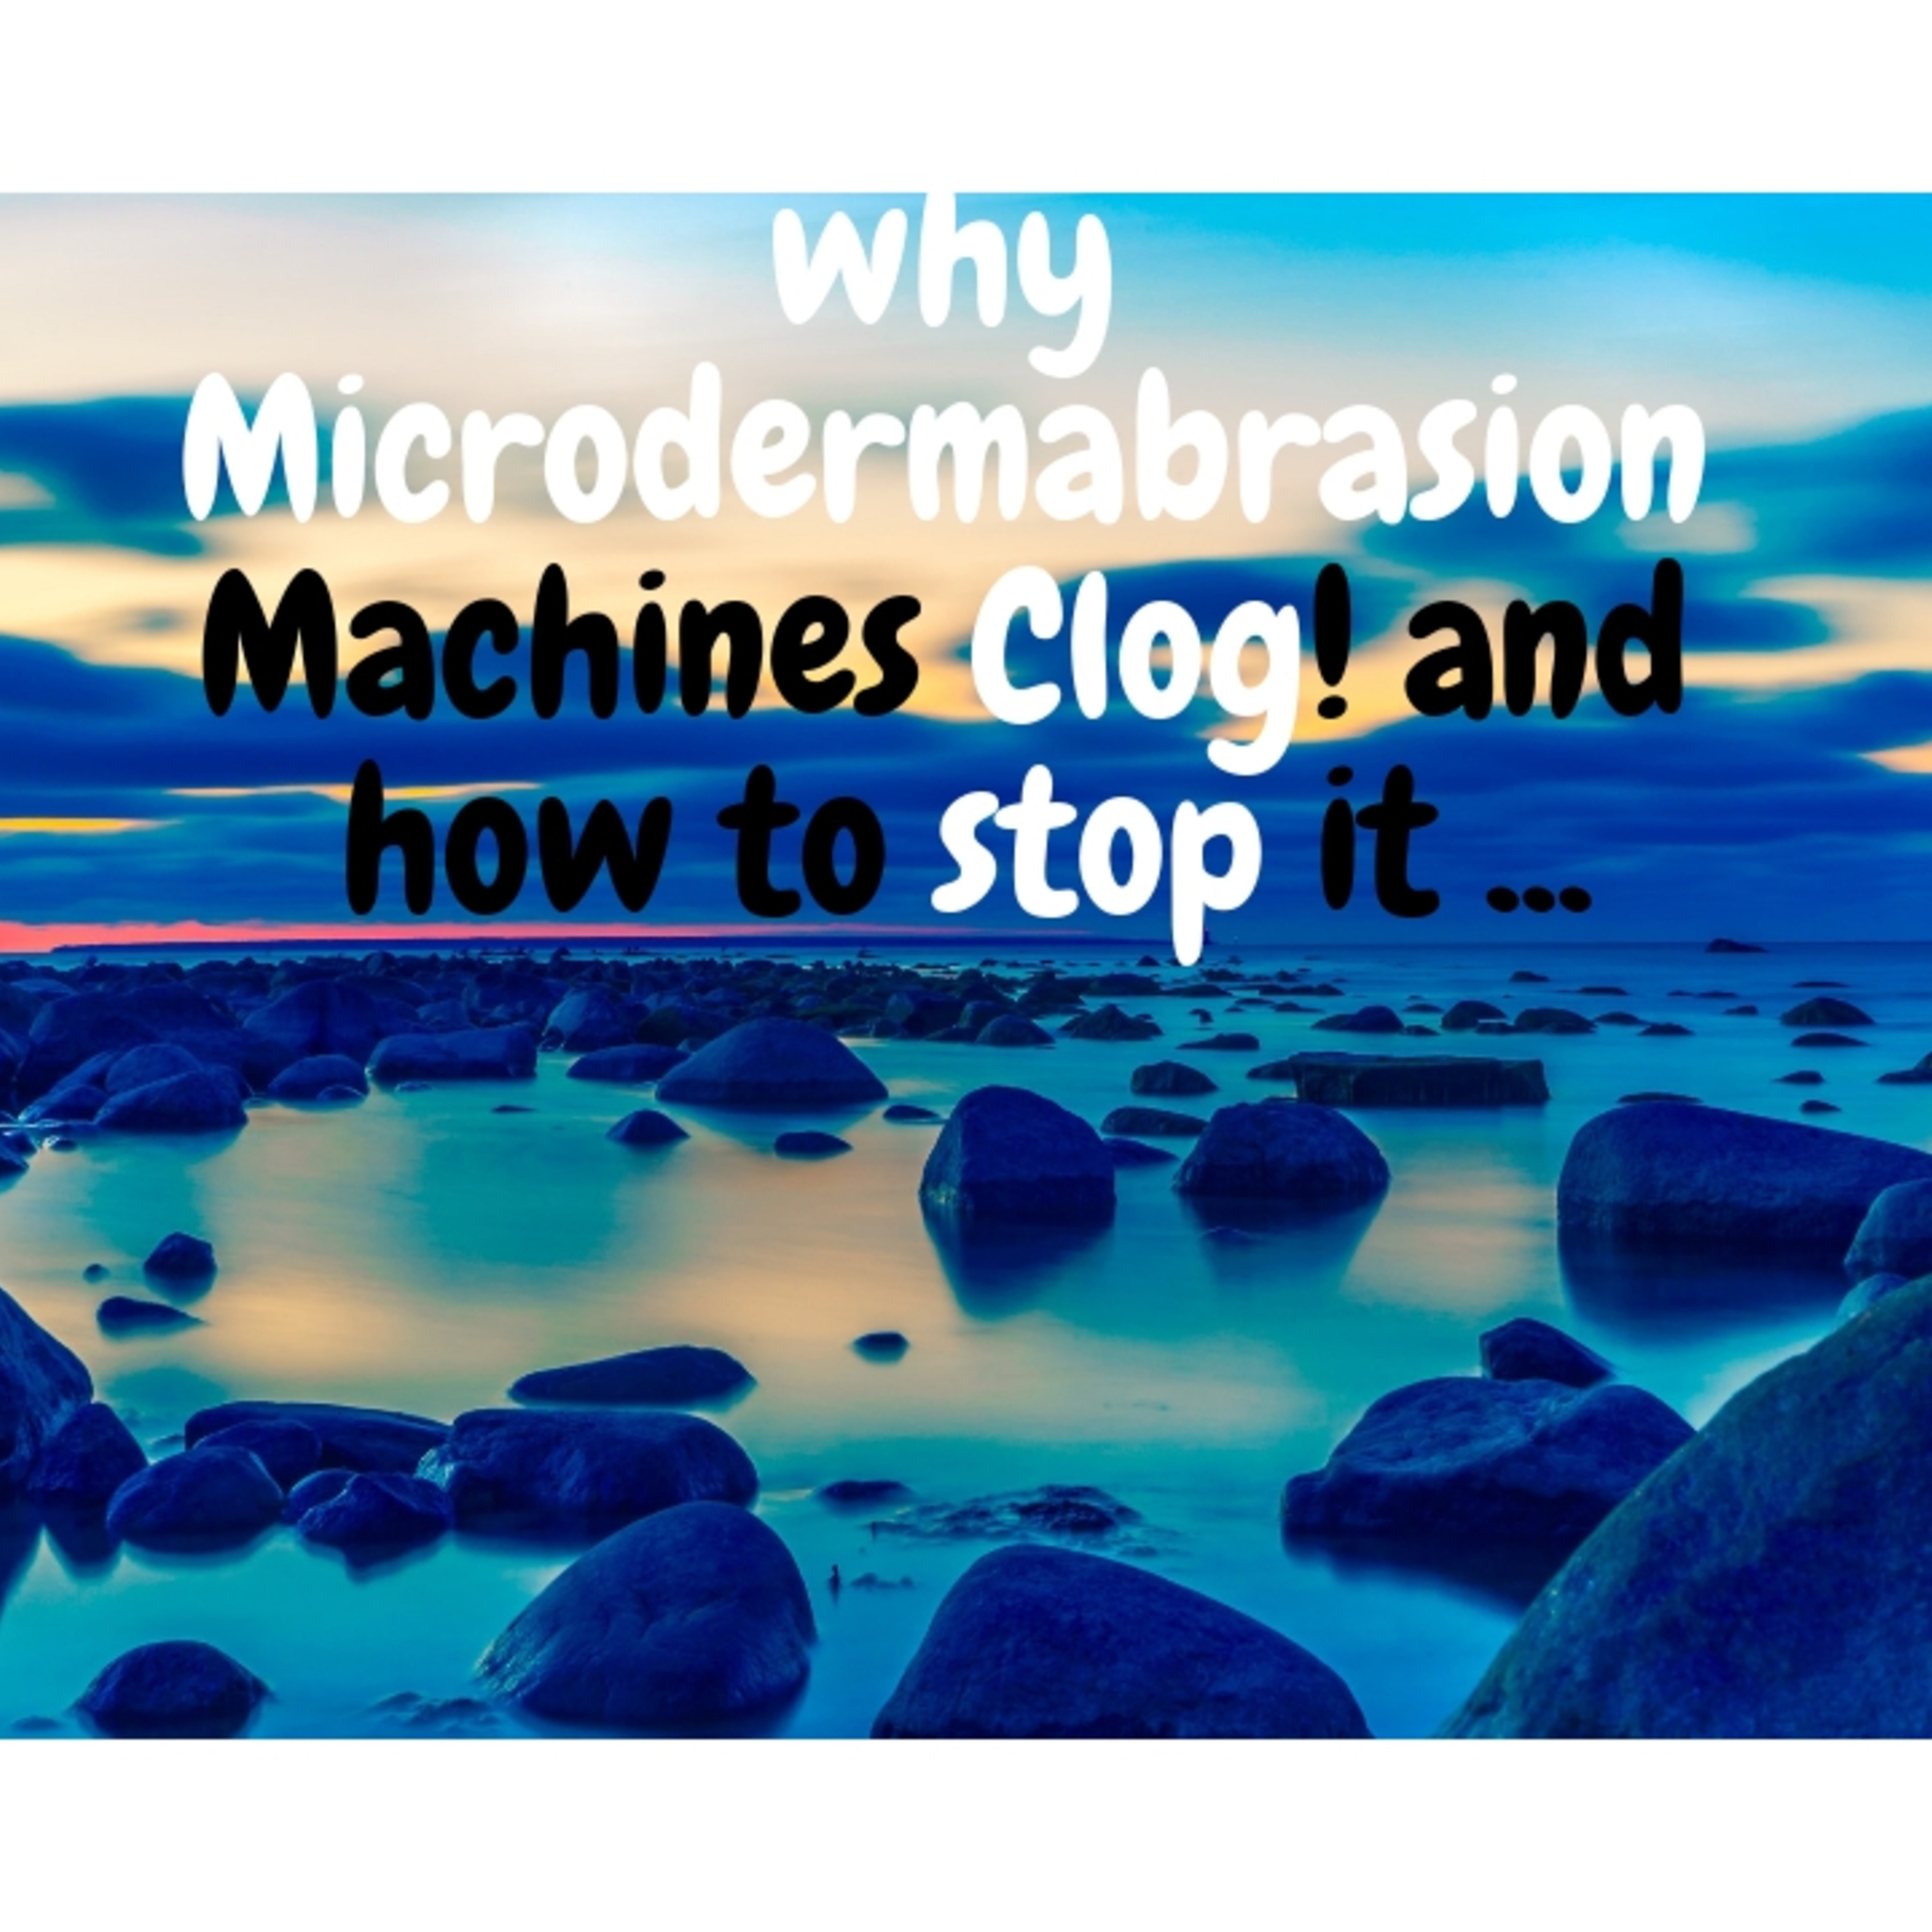 Episode 5 Why Microdermabrasion machines Clog